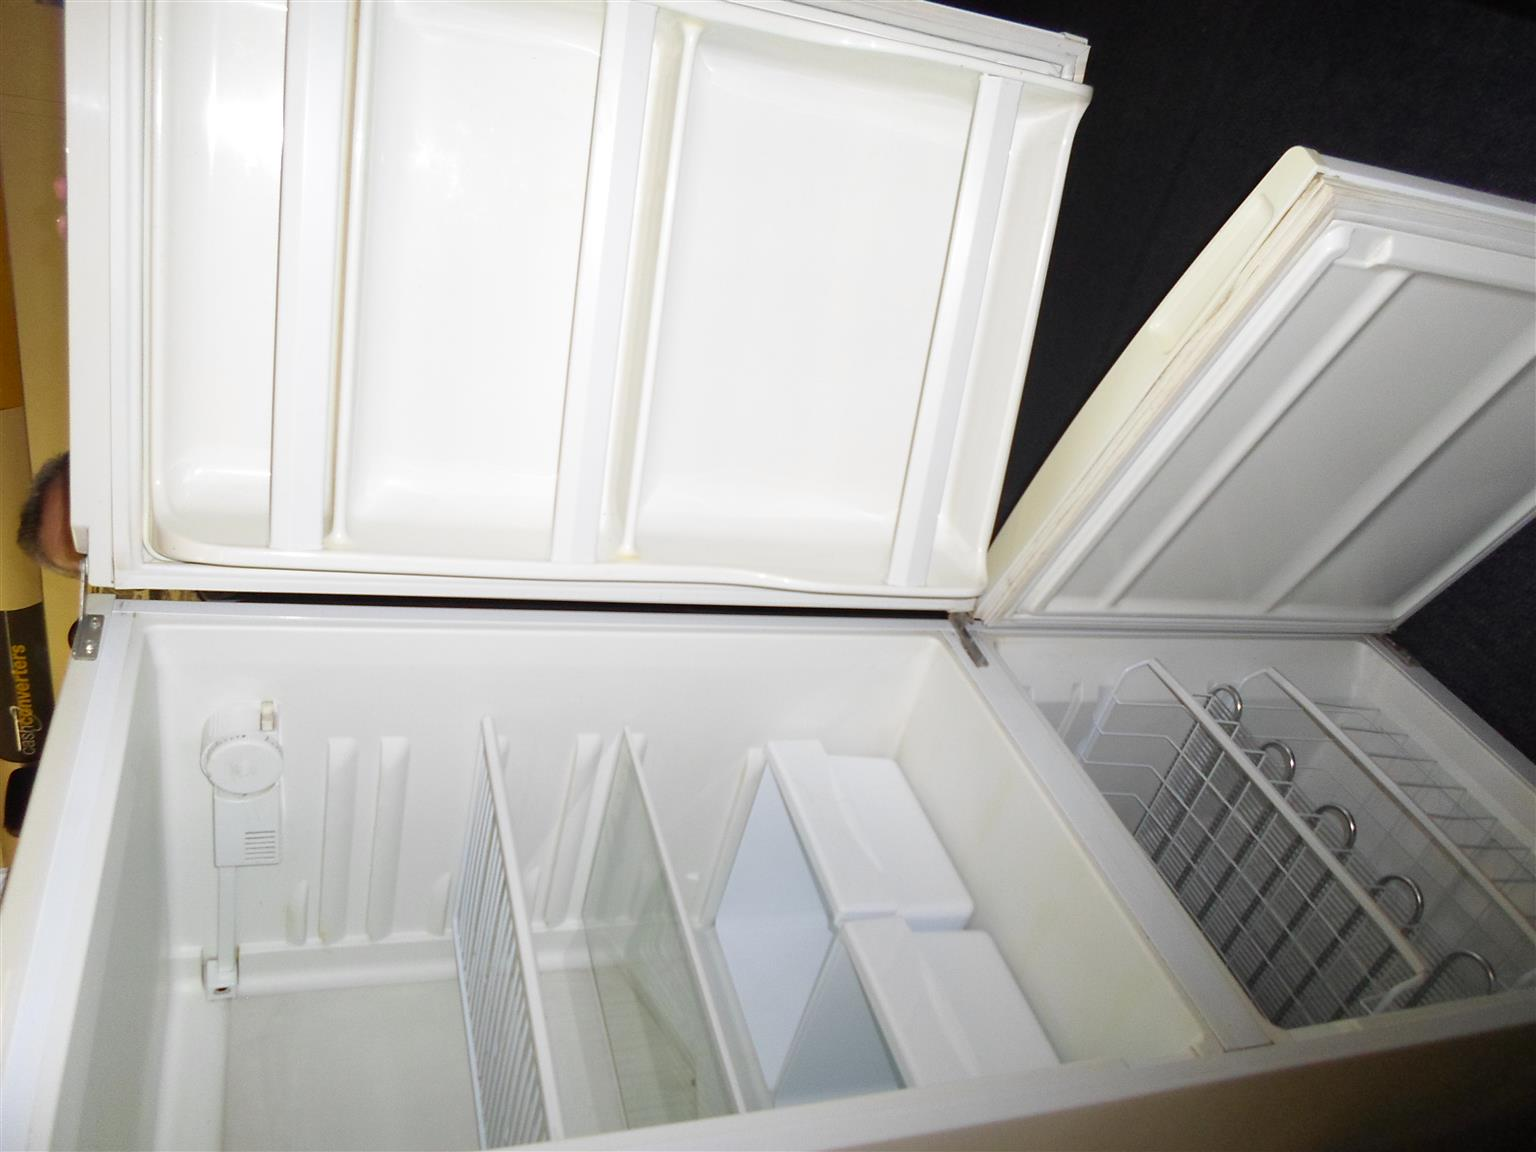 KIC Fridge / Freezer